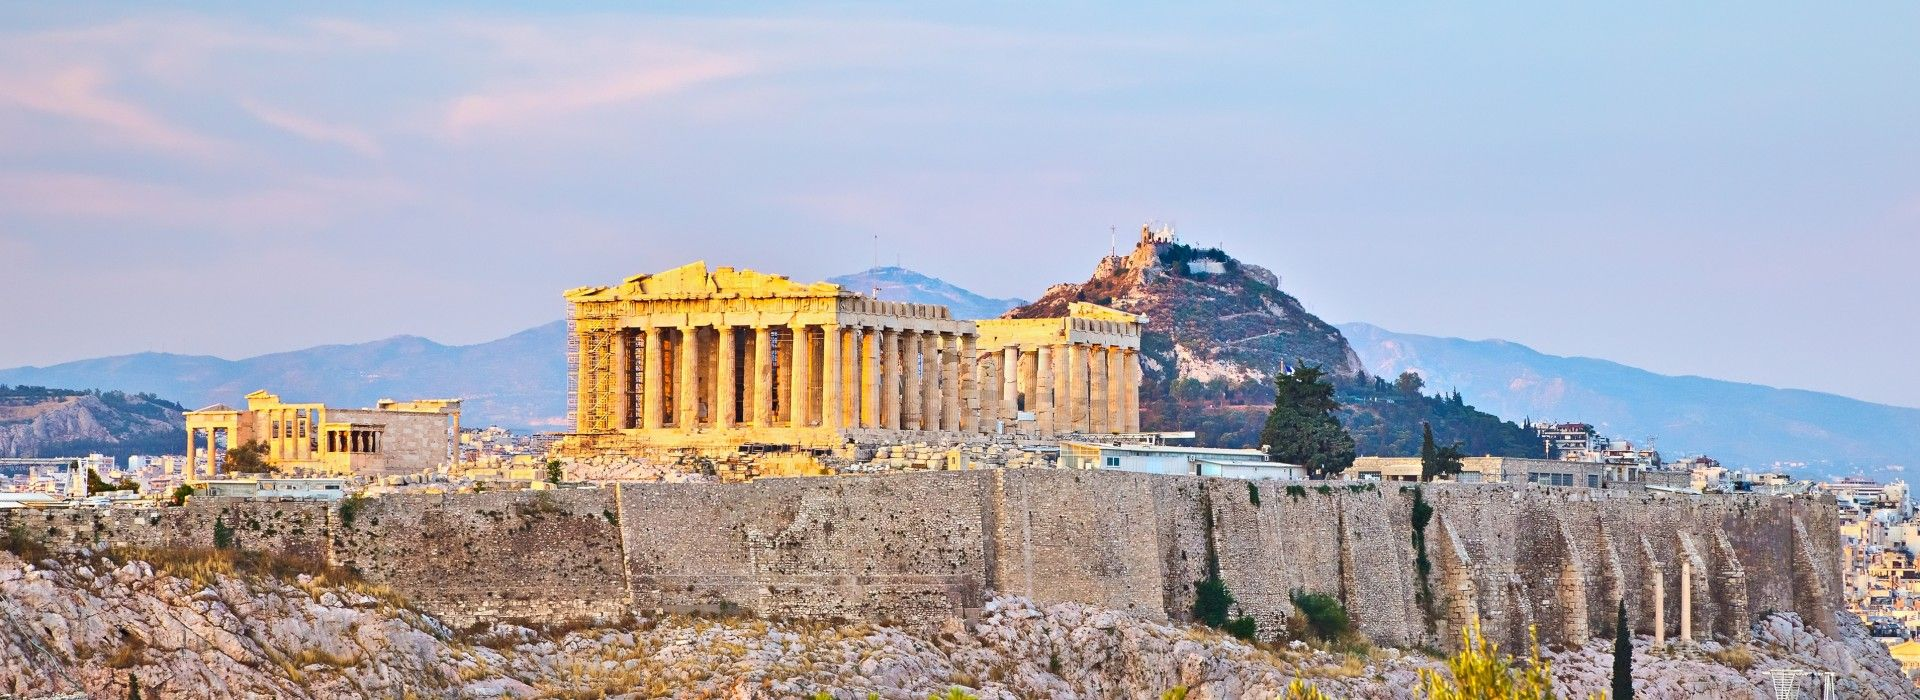 The Acropolis of Athens, an ancient citadel located on a rocky outcrop above the city of Athens